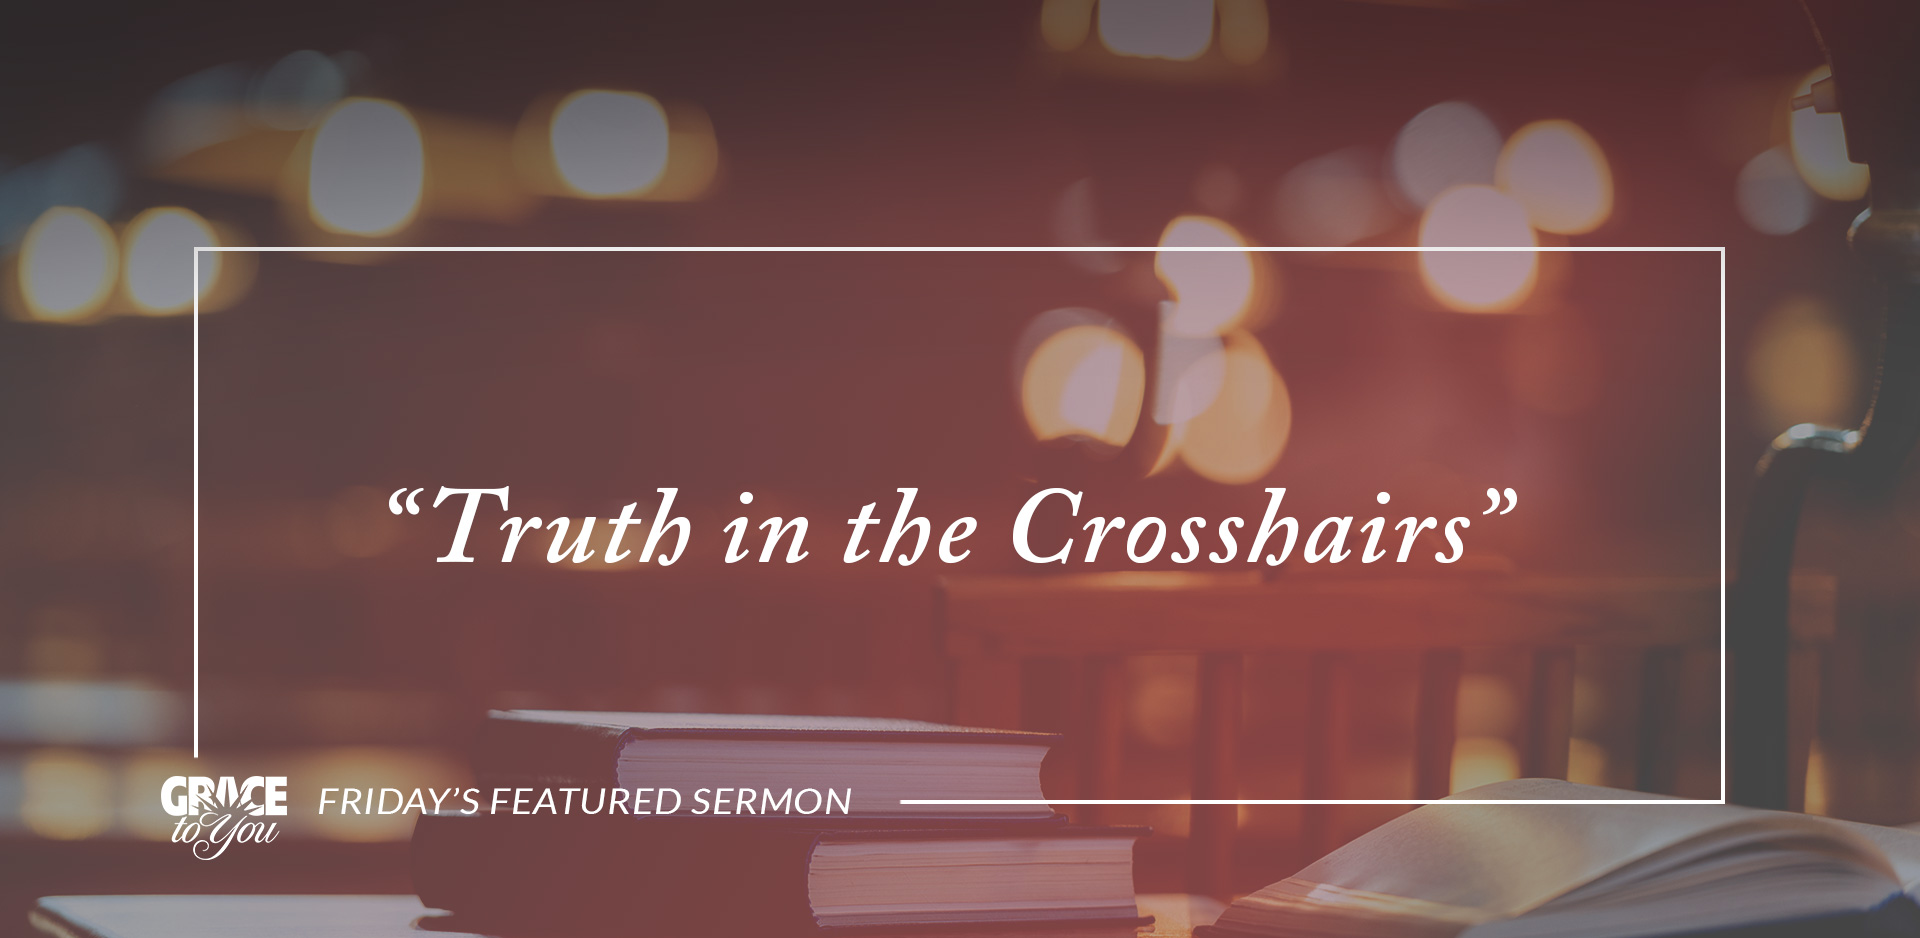 "Friday's Featured Sermon: ""Truth in the Crosshairs"""